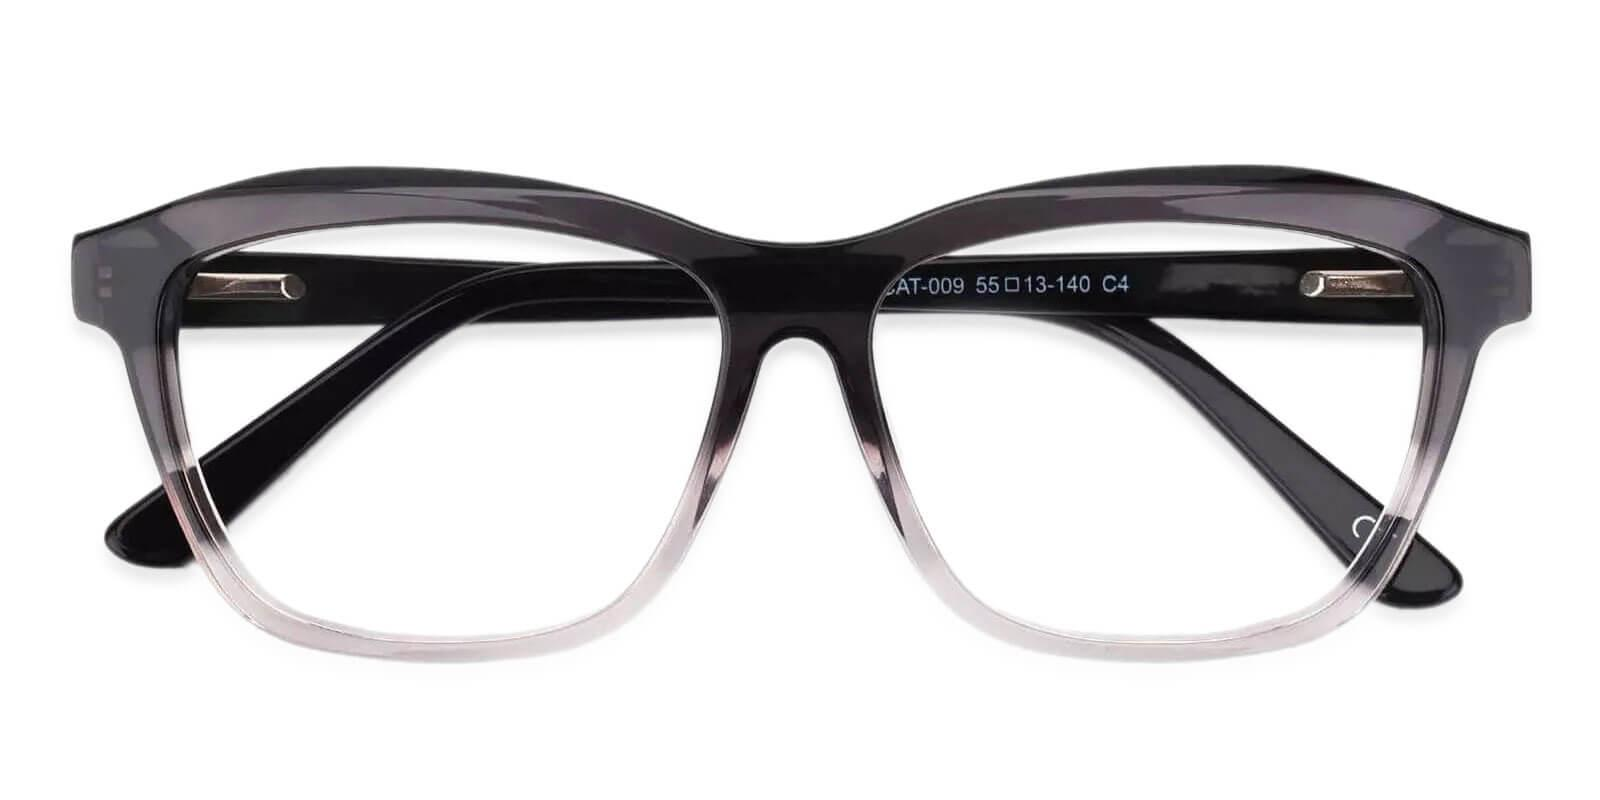 Sonia Translucent Acetate Eyeglasses , SpringHinges , UniversalBridgeFit Frames from ABBE Glasses